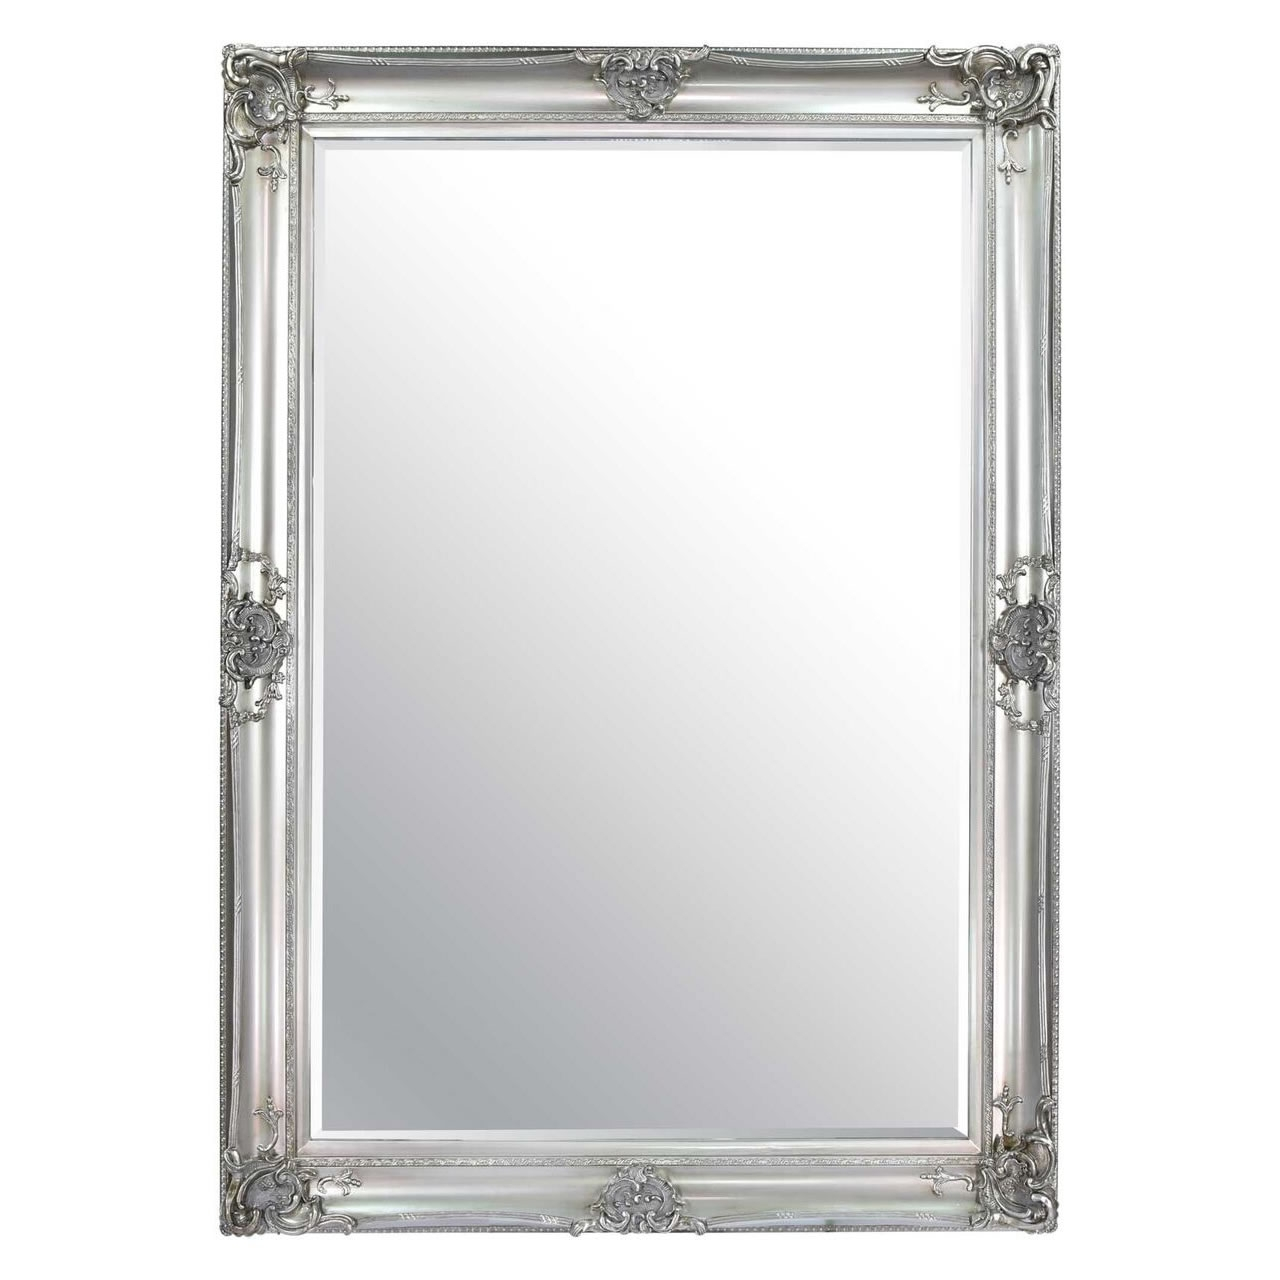 Ornate Framed Mirrors Regarding Silver Ornate Mirror (Image 9 of 15)